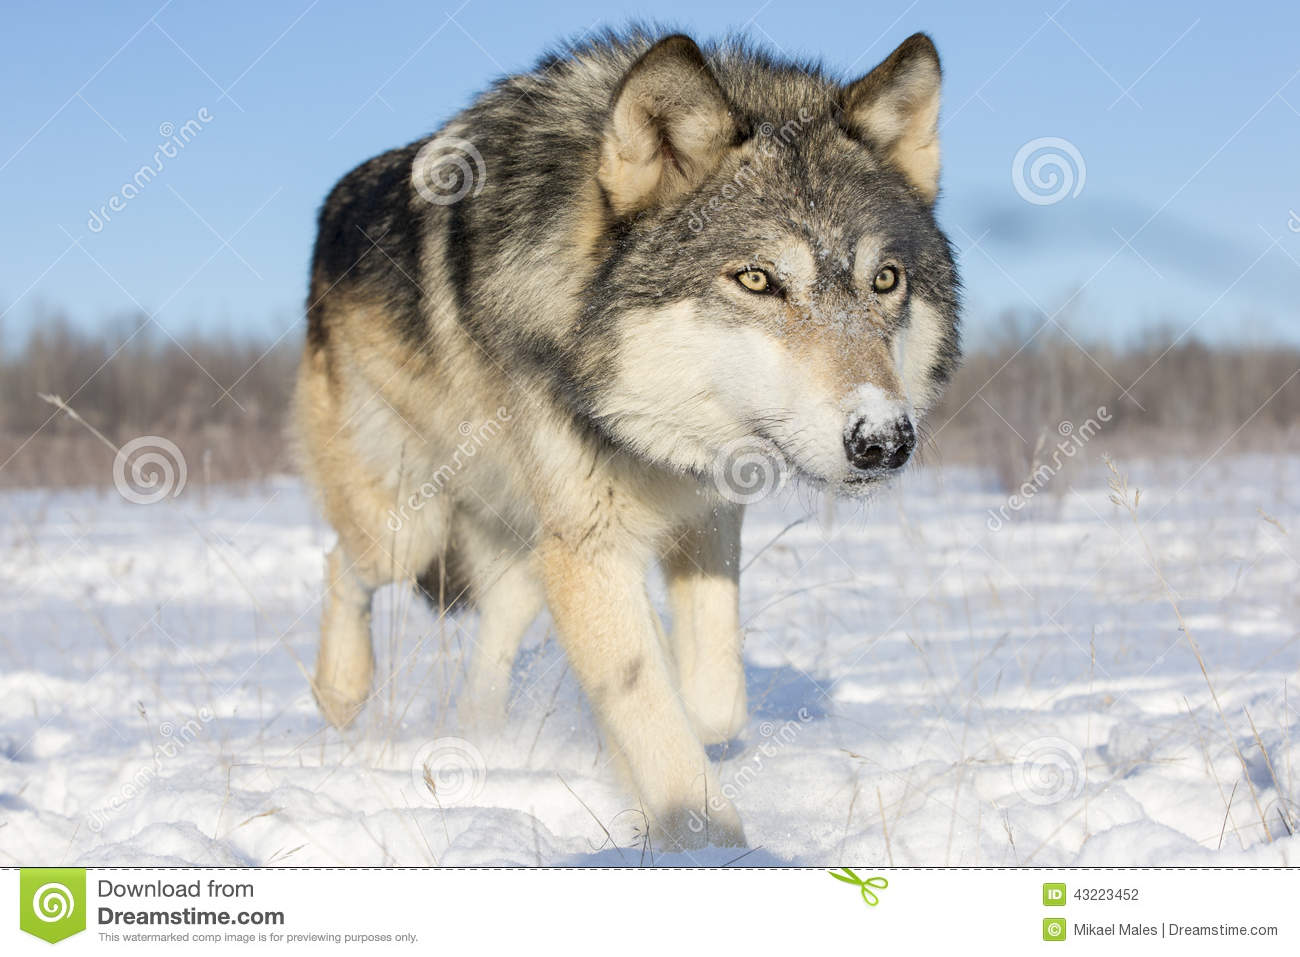 Download Super Close Picture Of Timber Wolf In Snow Stock Photo - Image of canines, cute: 43223452